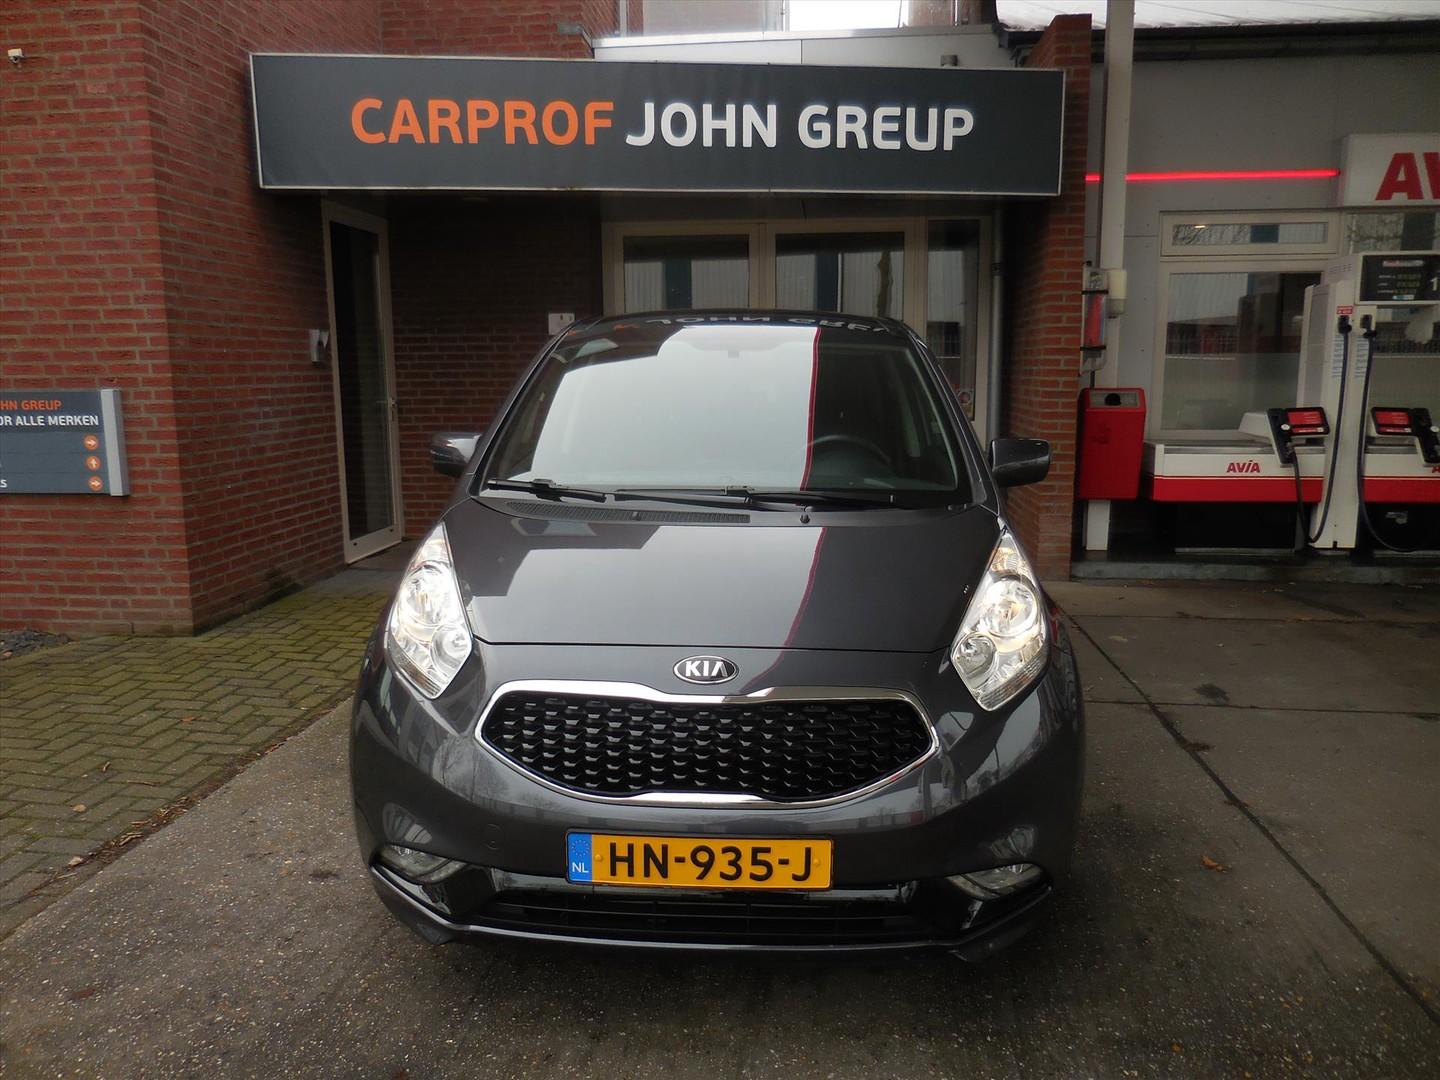 Kia Venga 1.4 cvvt 66kw/90pk first edition